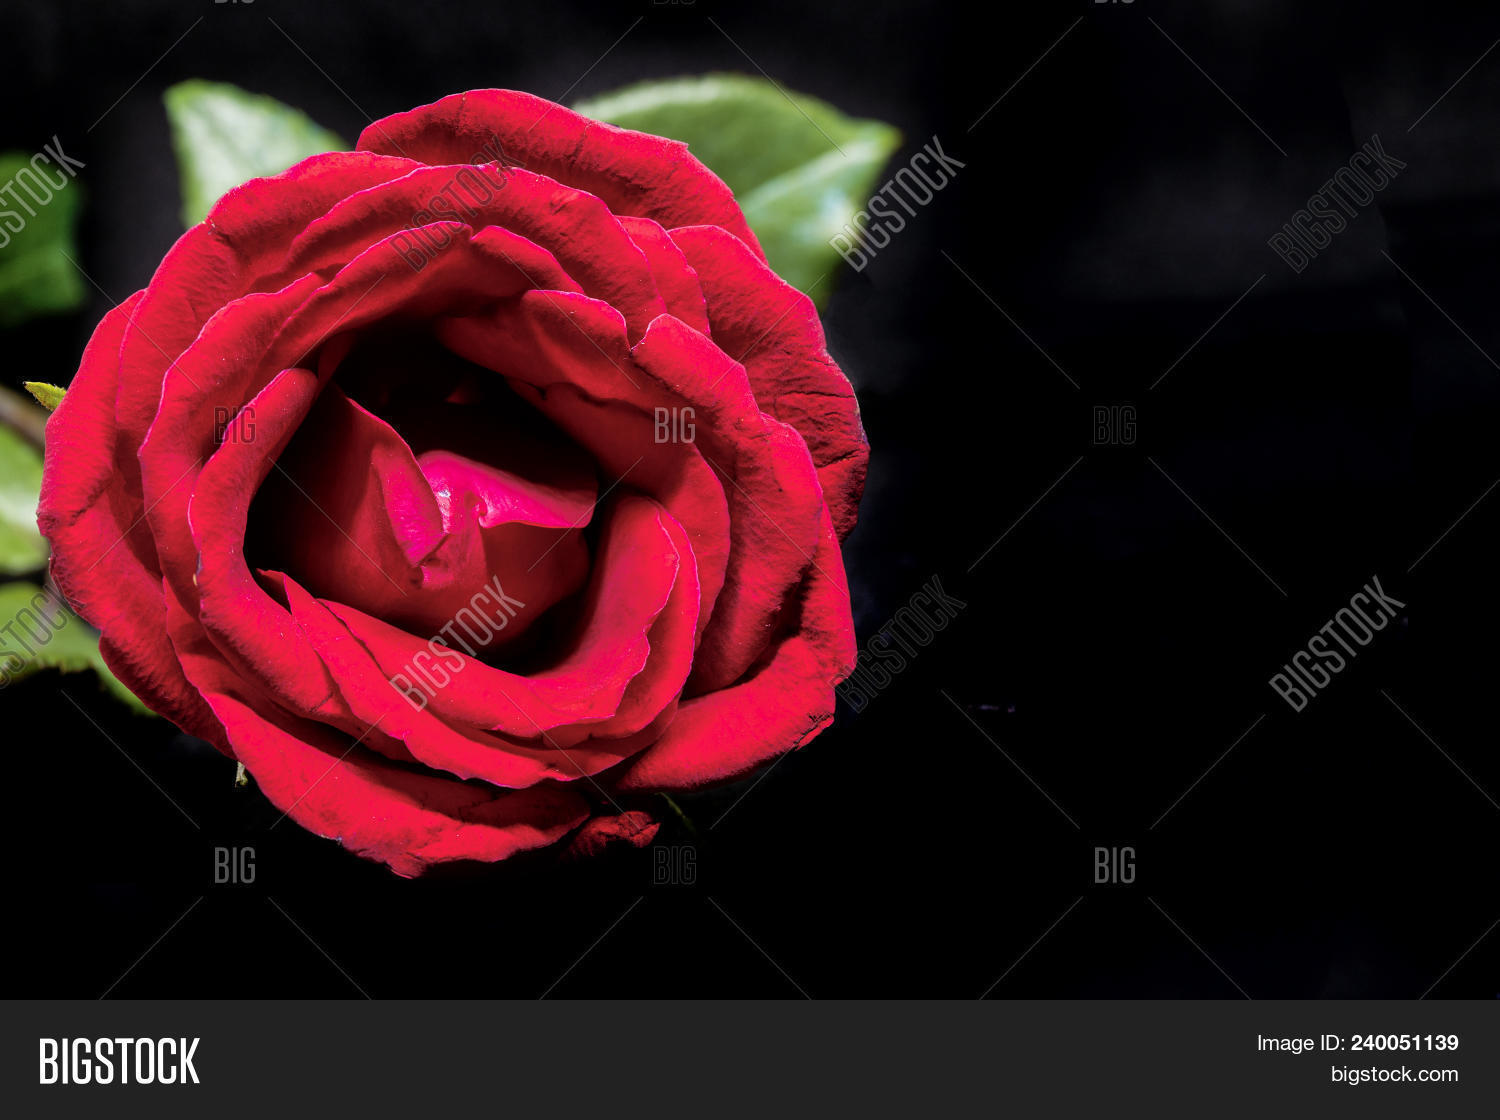 Red rose on black image photo free trial bigstock red rose on black background beautiful blossom with velvet petal hot pink flower banner mightylinksfo